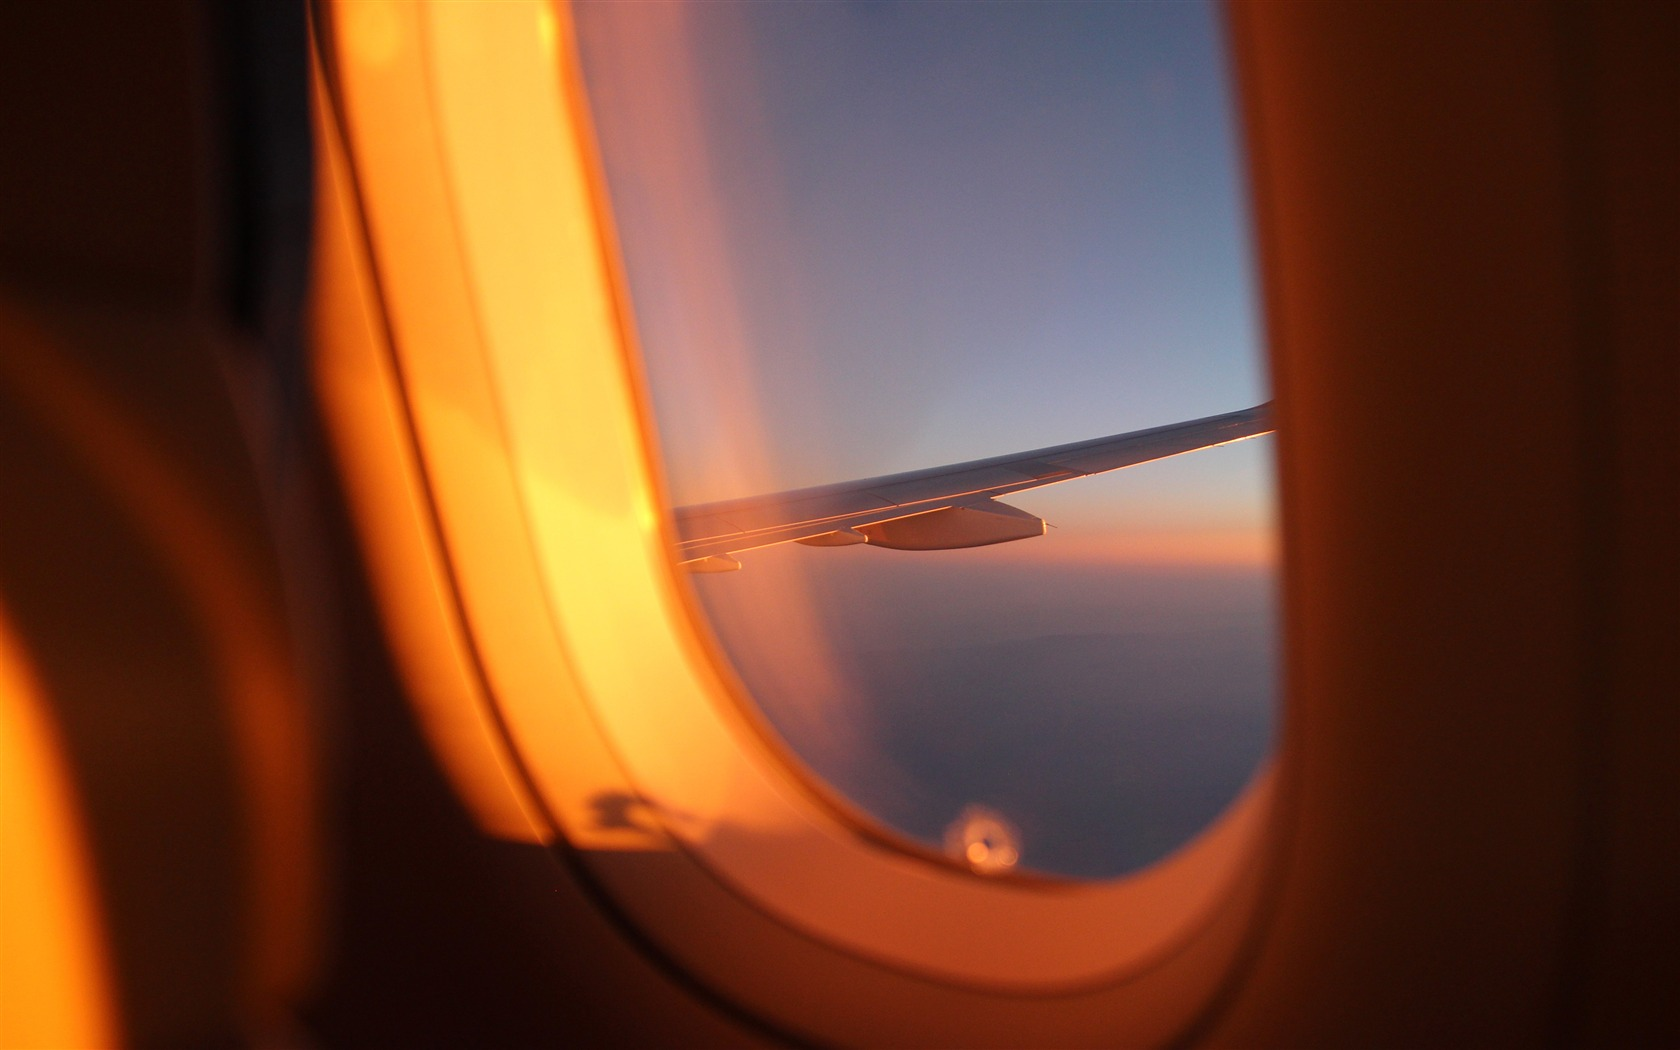 Airplane window outside sunset view 4K HD - 1680x1050 wallpaper download